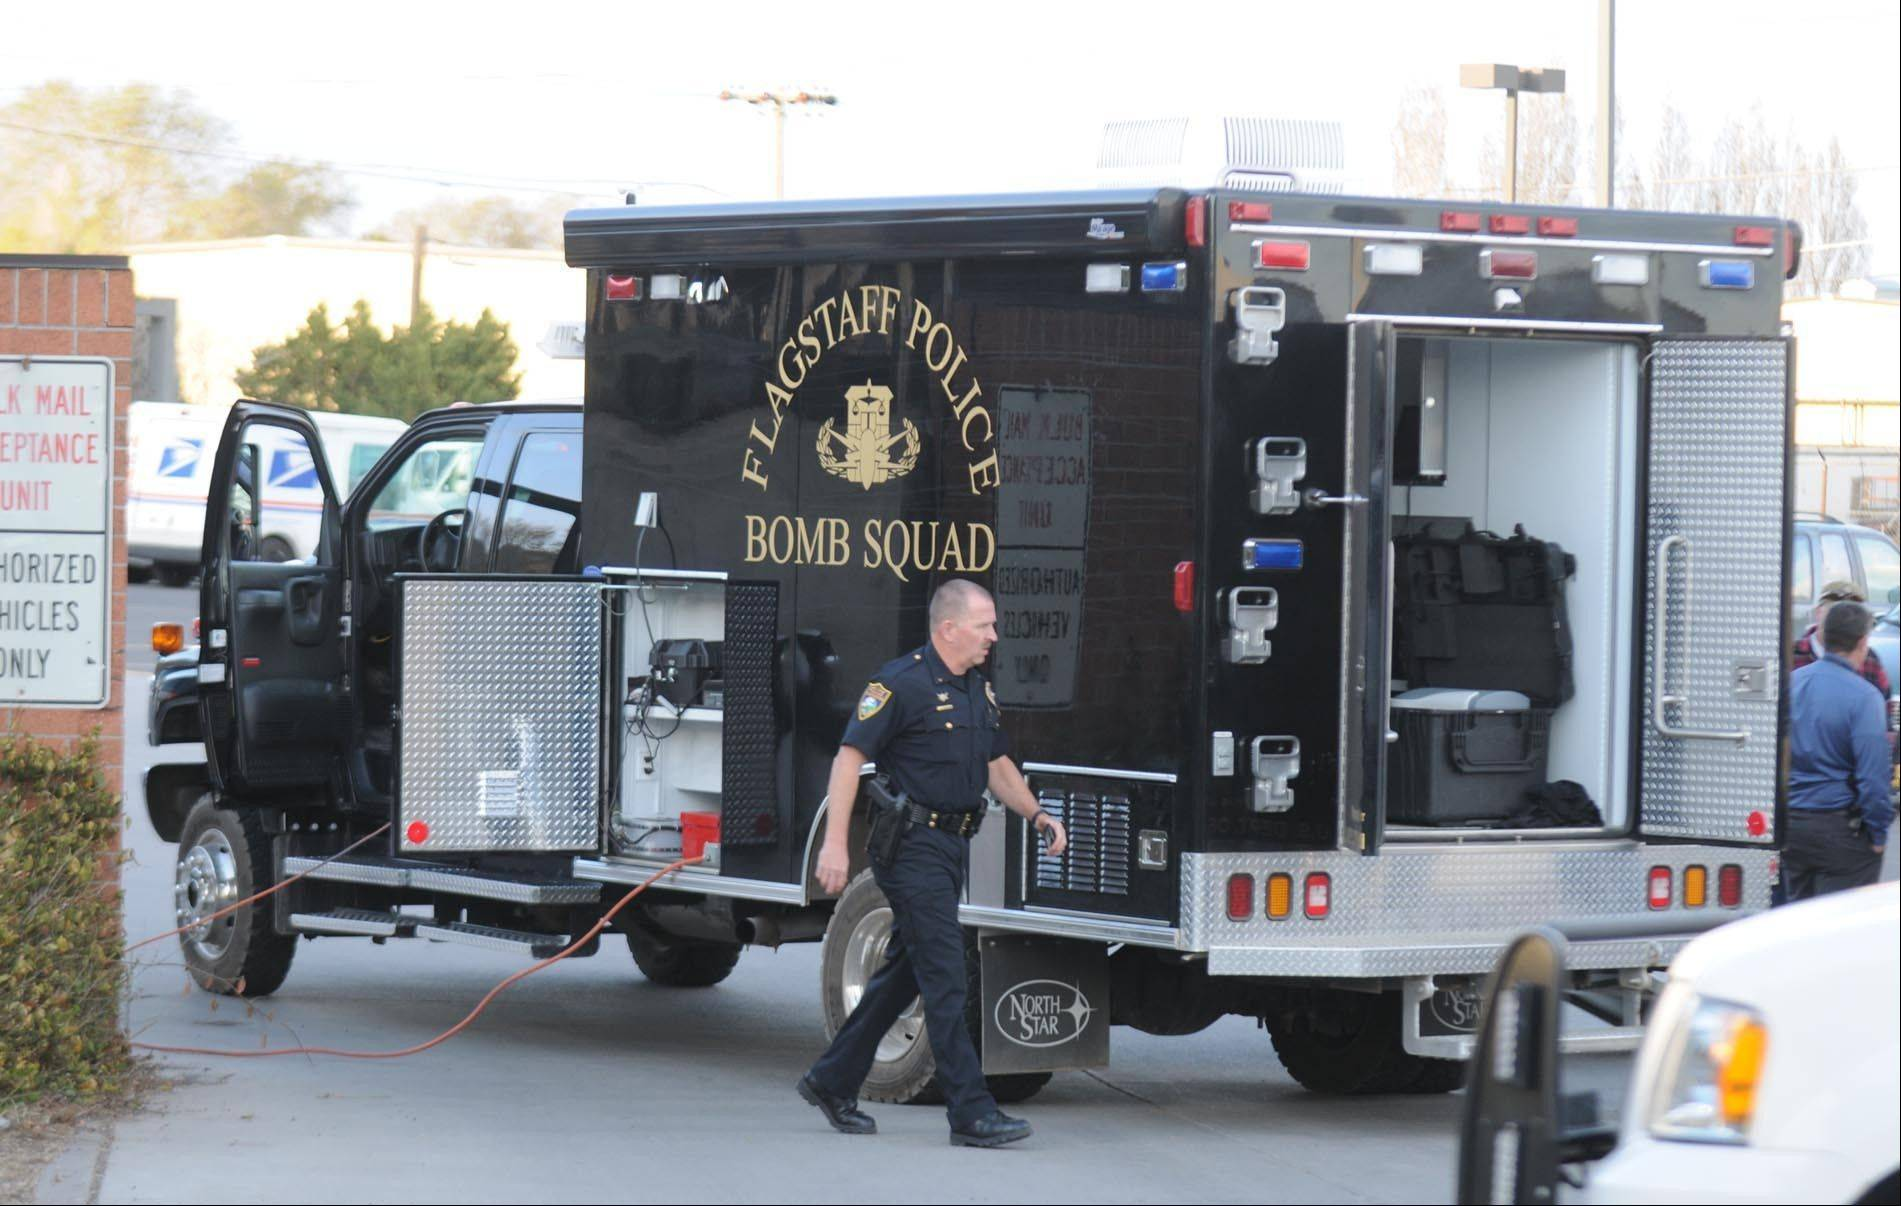 Flagstaff, Ariz., police respond Thursday to a bomb threat at the Flagstaff Post Office on Postal Boulevard. (Associated Press)